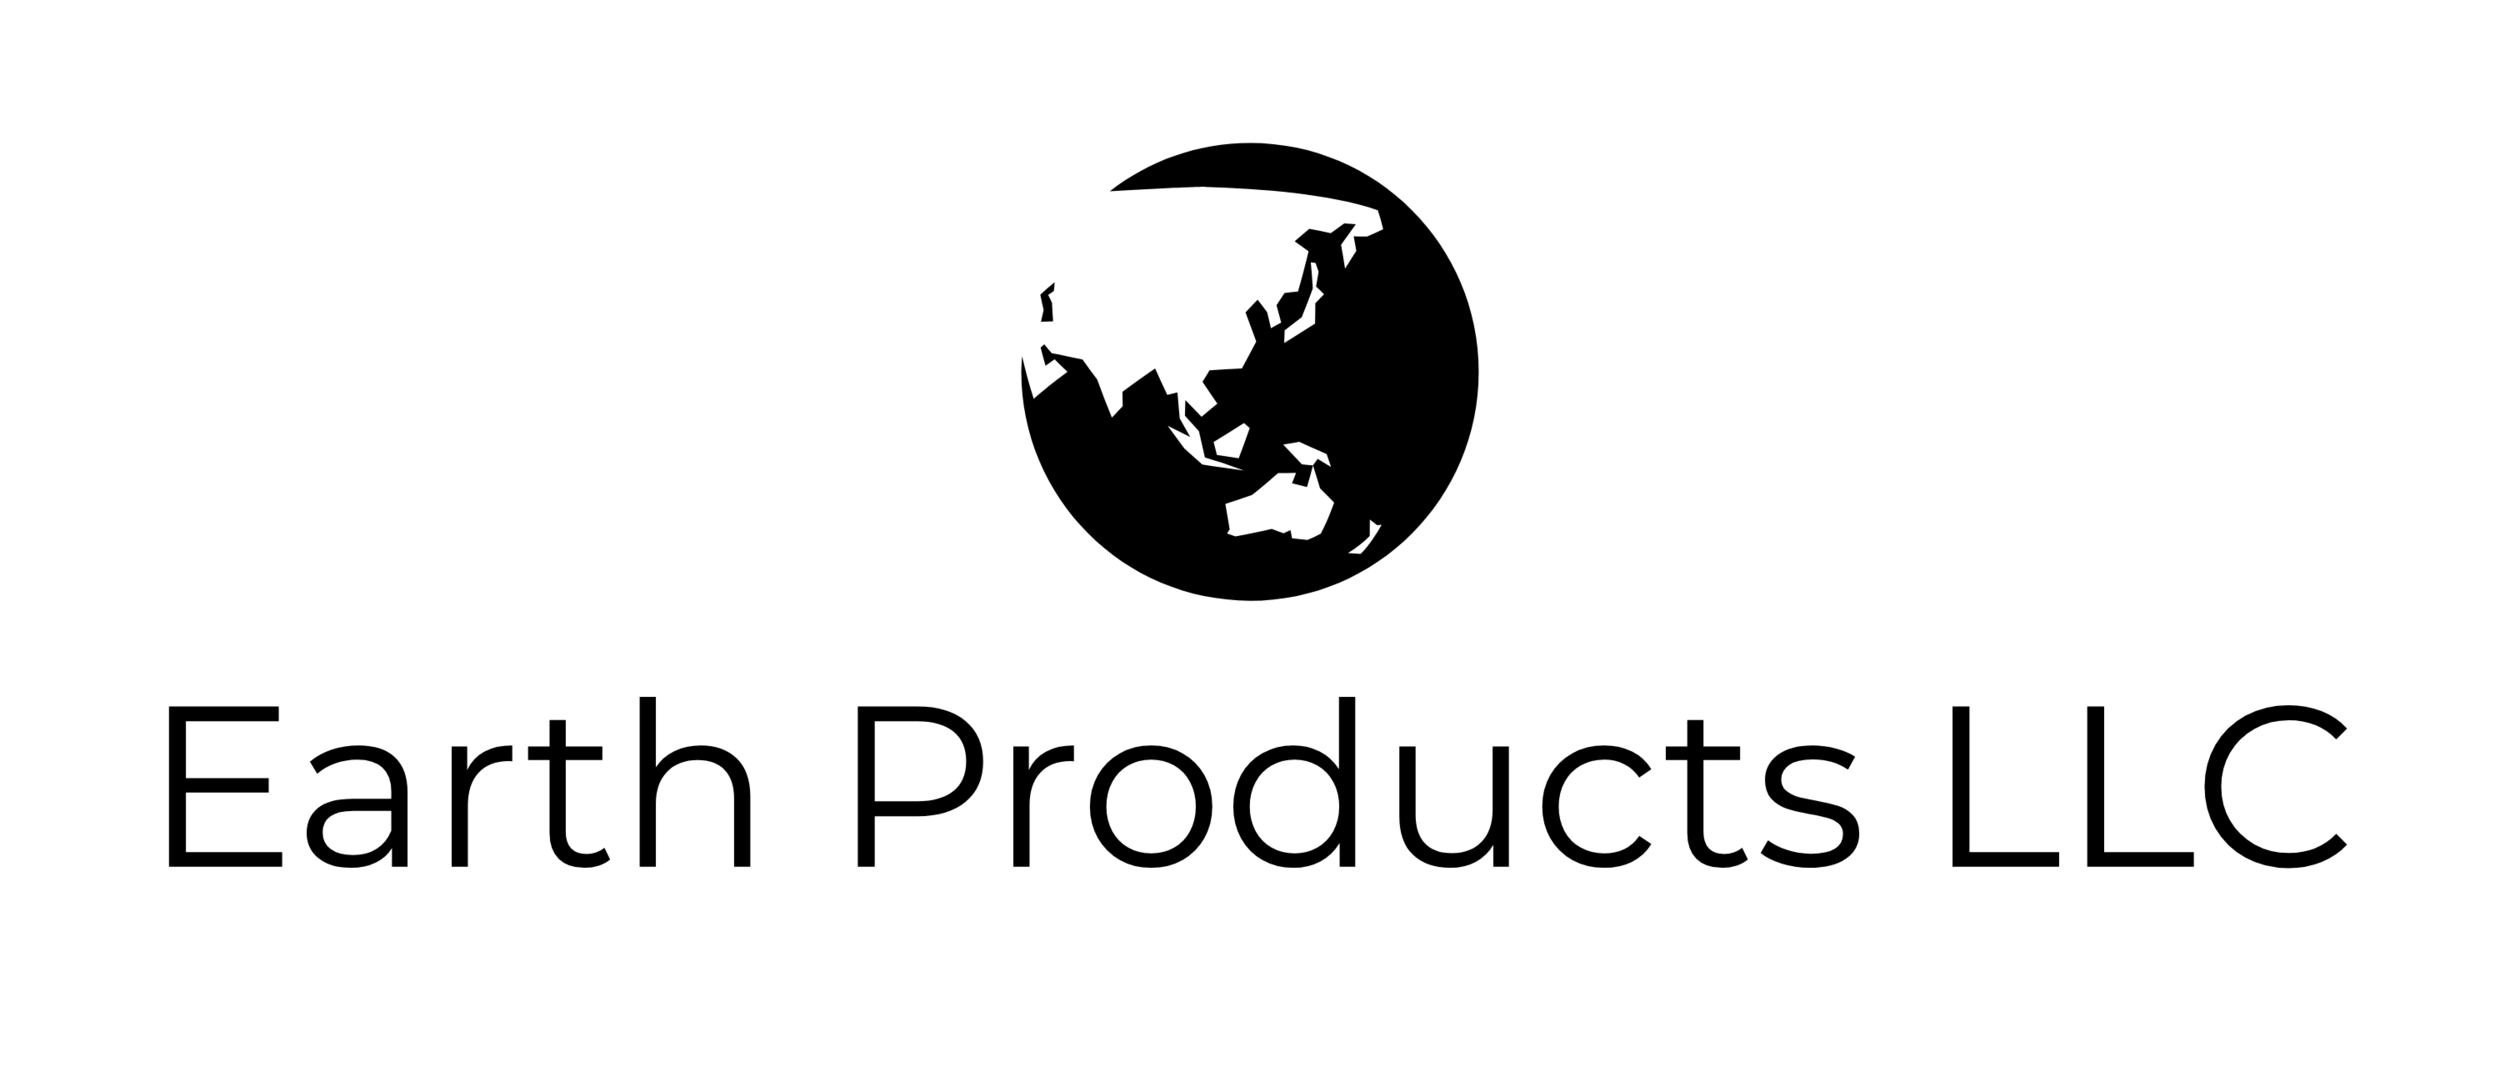 Earth Products LLC-logo-black.png